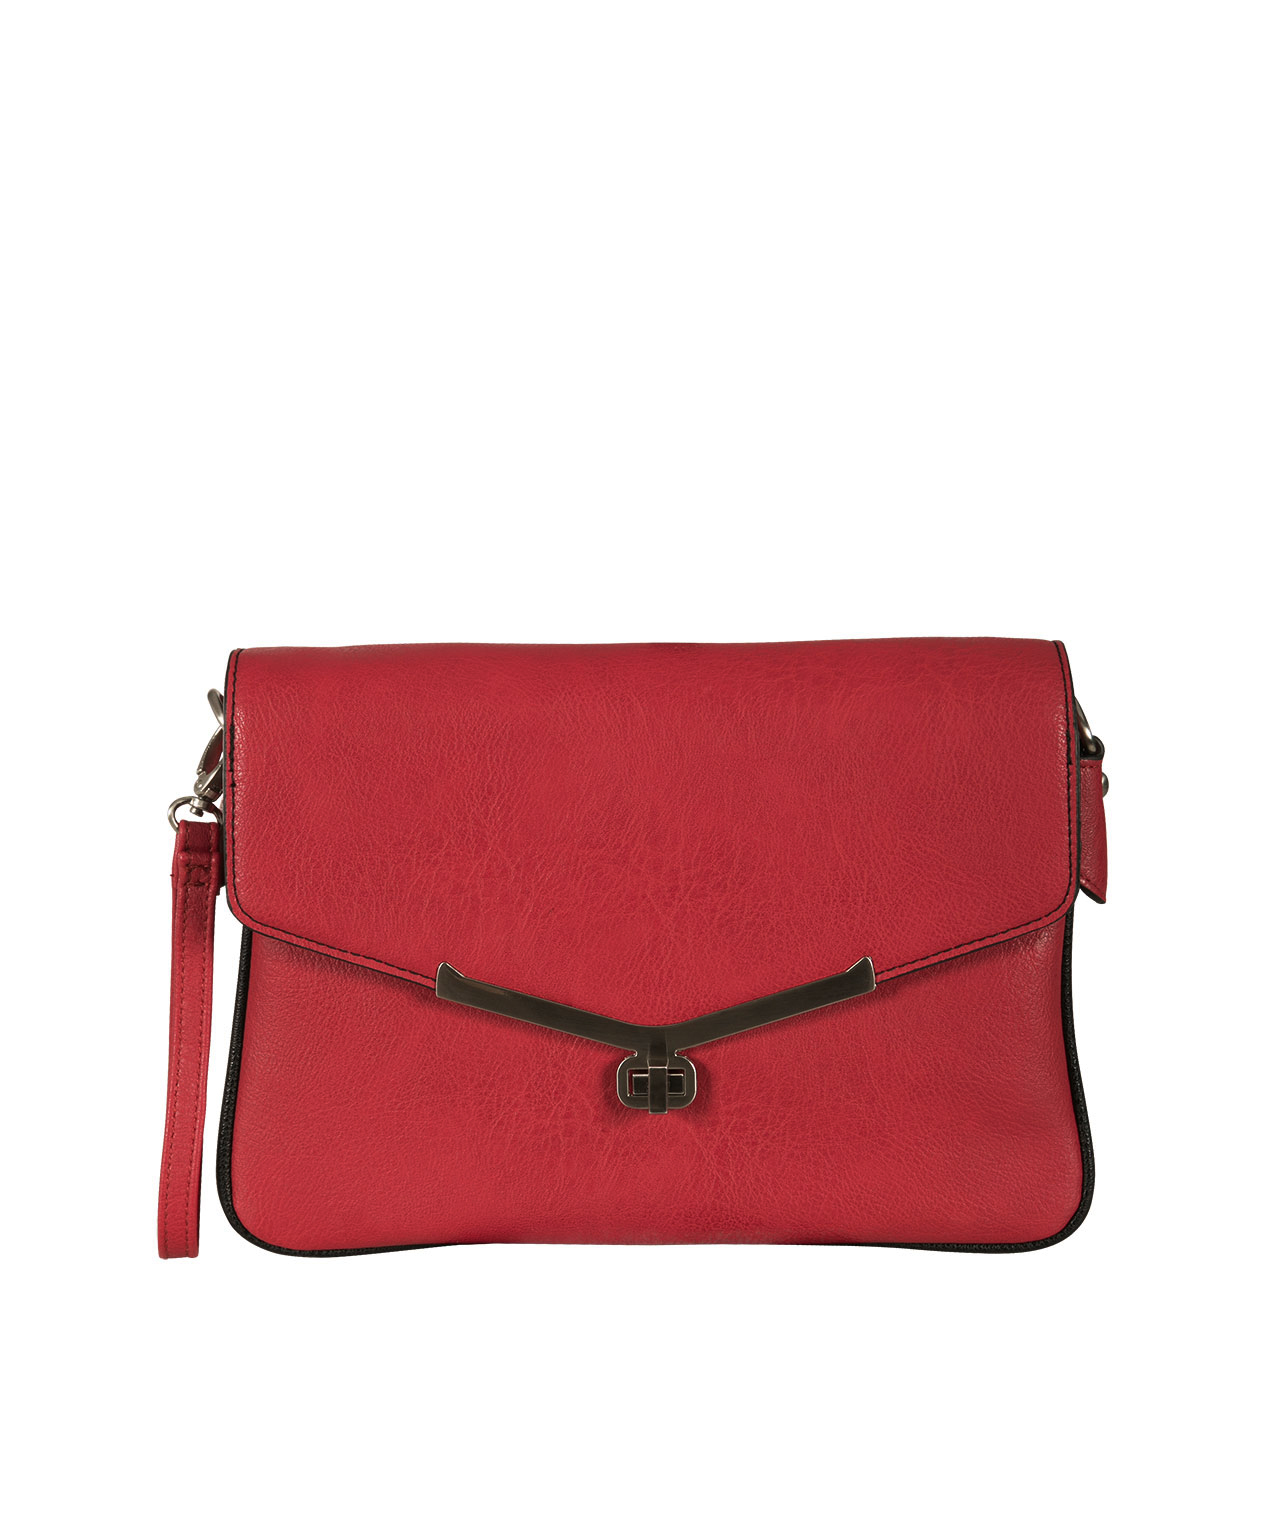 Red Crossbody Clutch Bag | Rickis